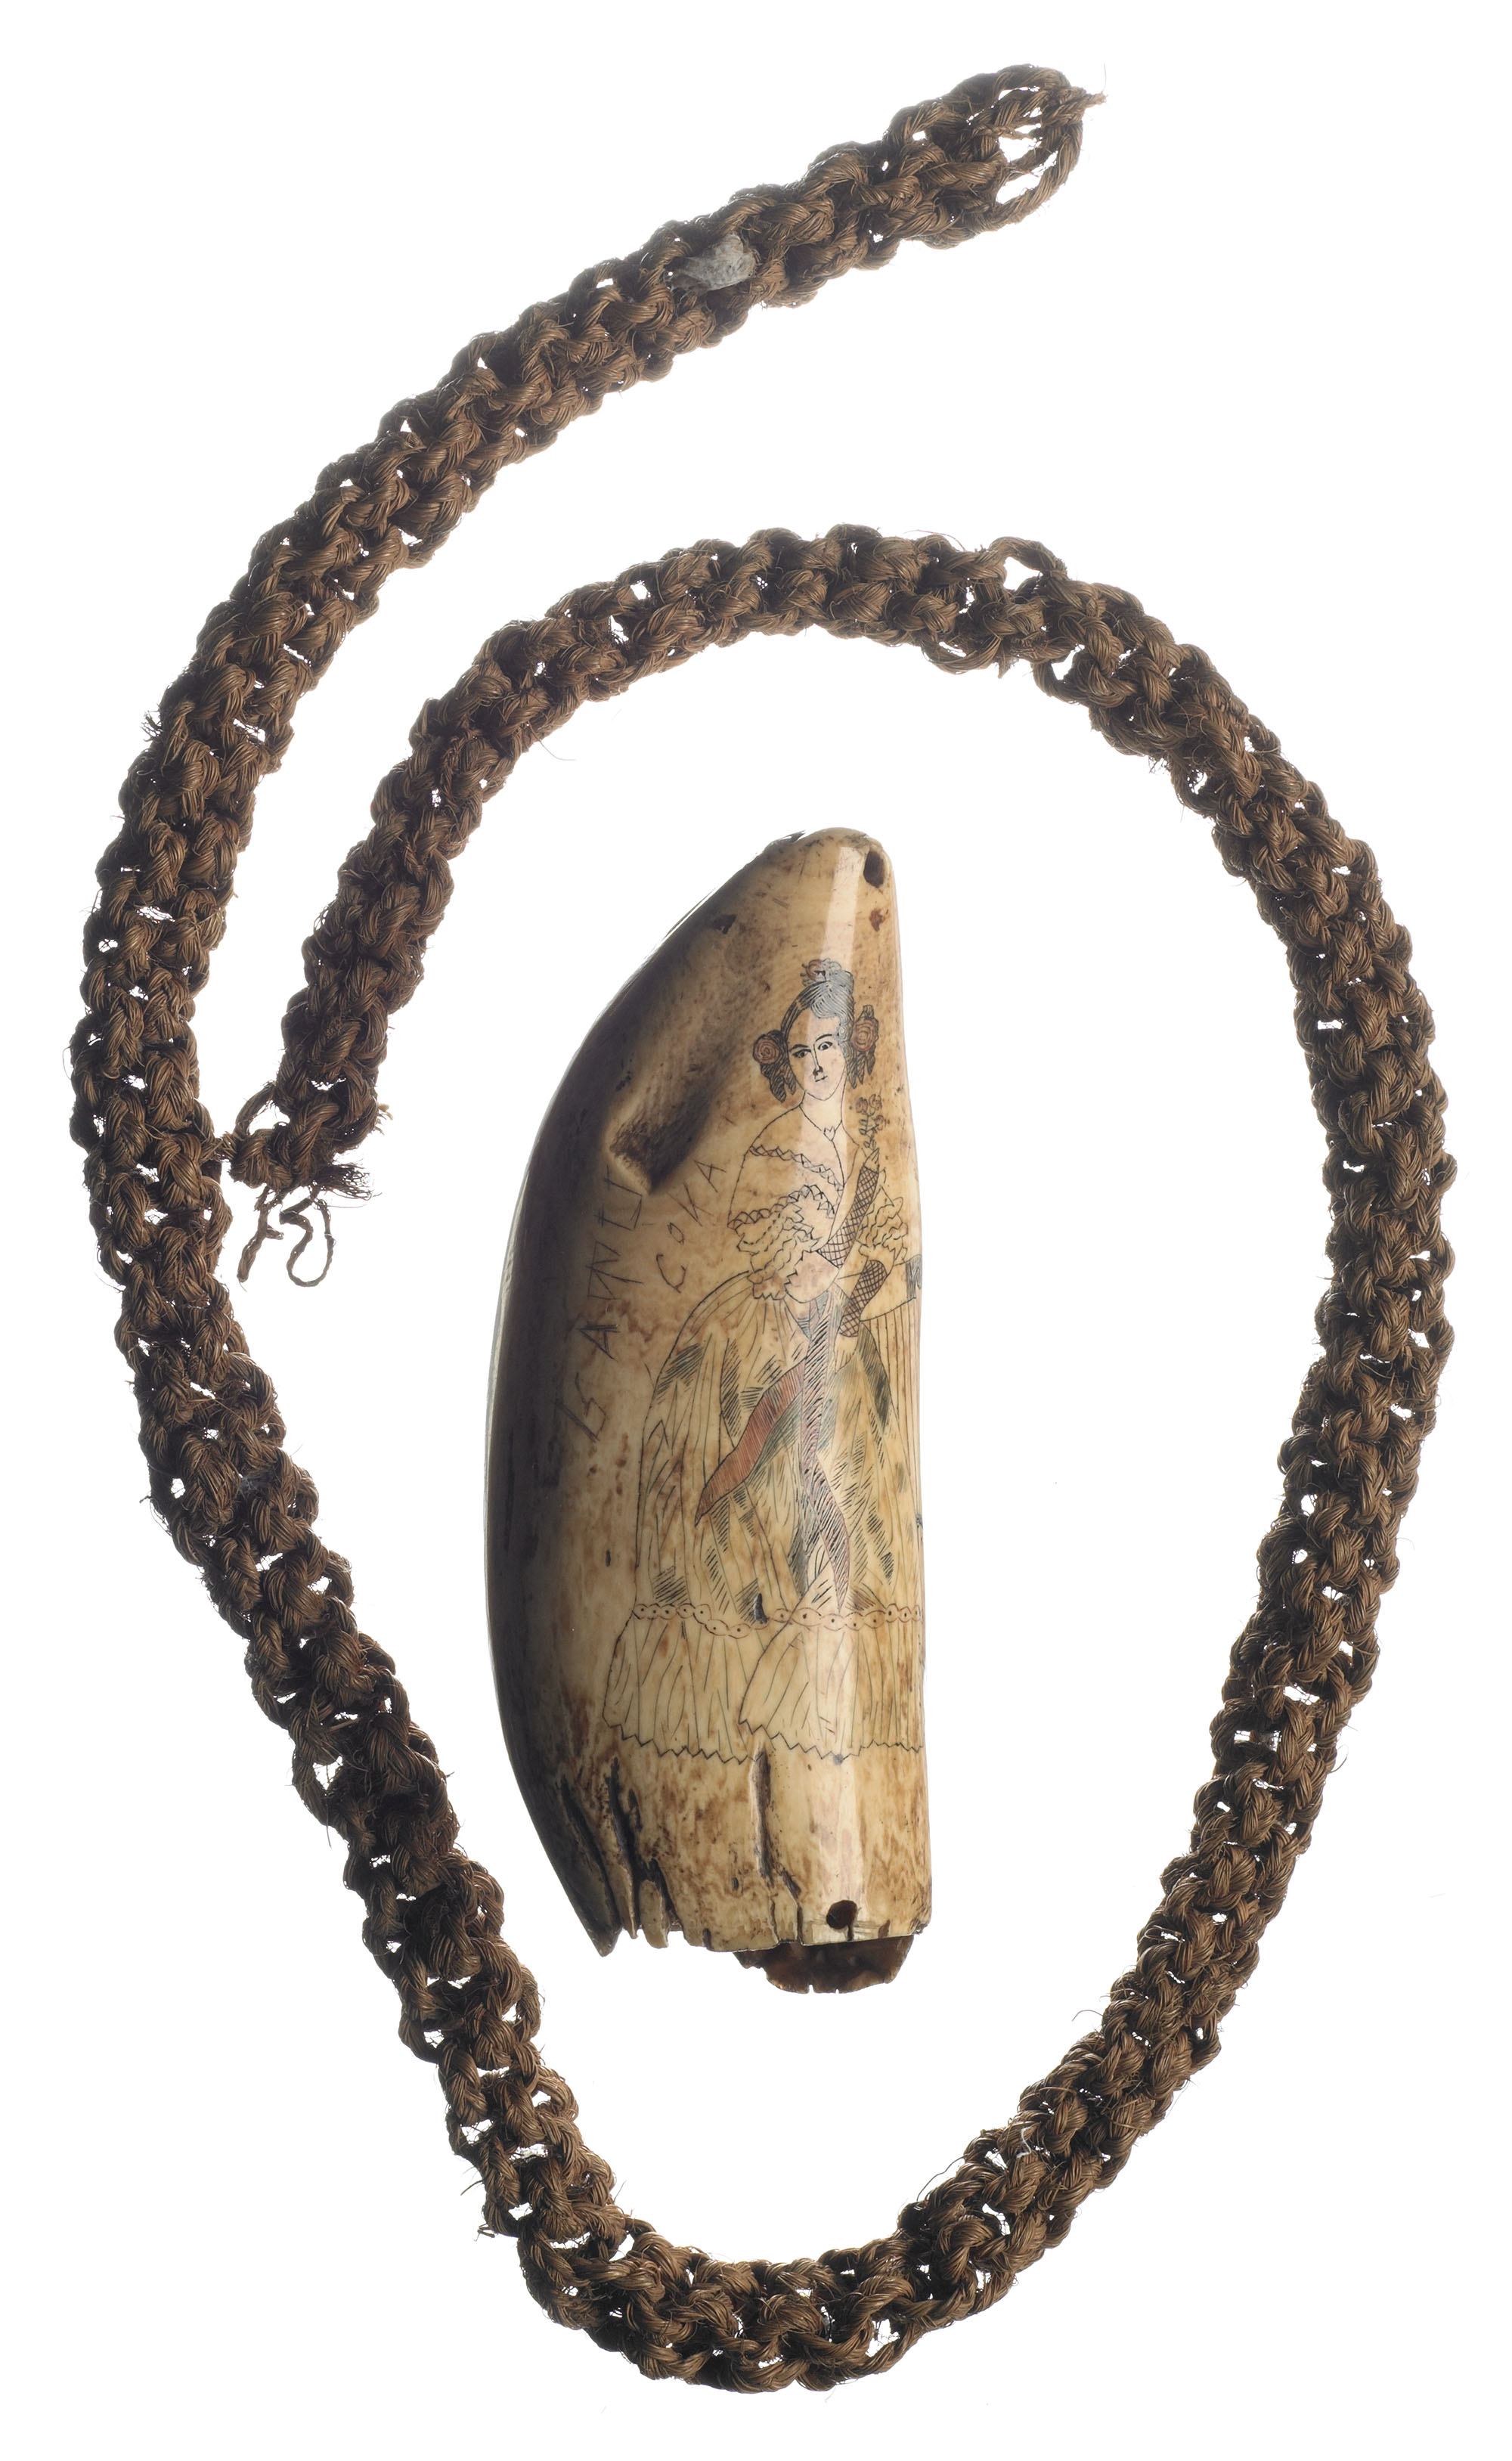 Whale's tooth surrounded by a braided necklace. On the tooth is an engraving of a woman